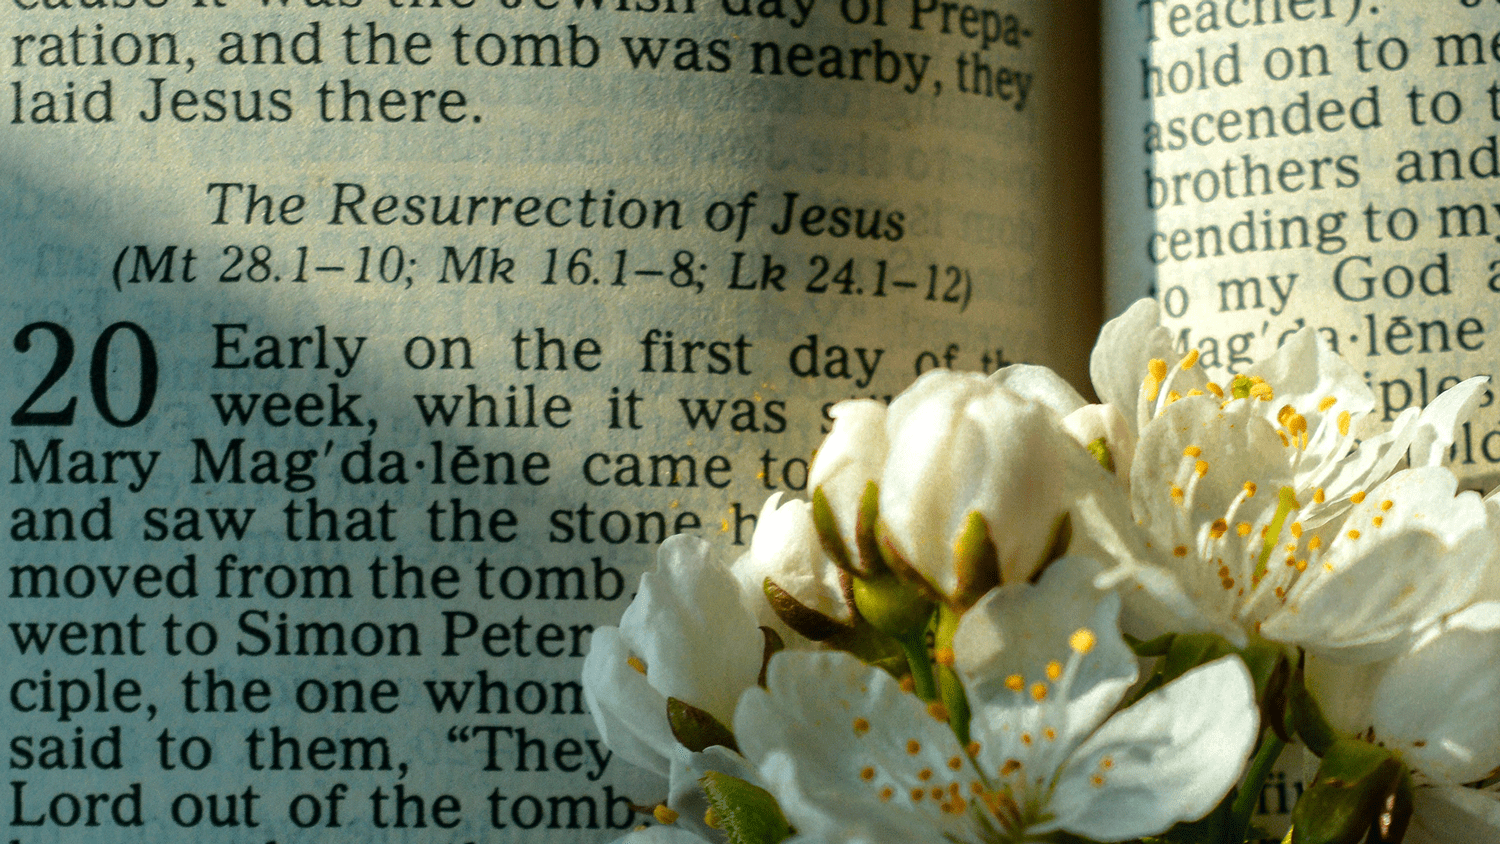 An image of a Bible open at the story of the Resurrection of Jesus.